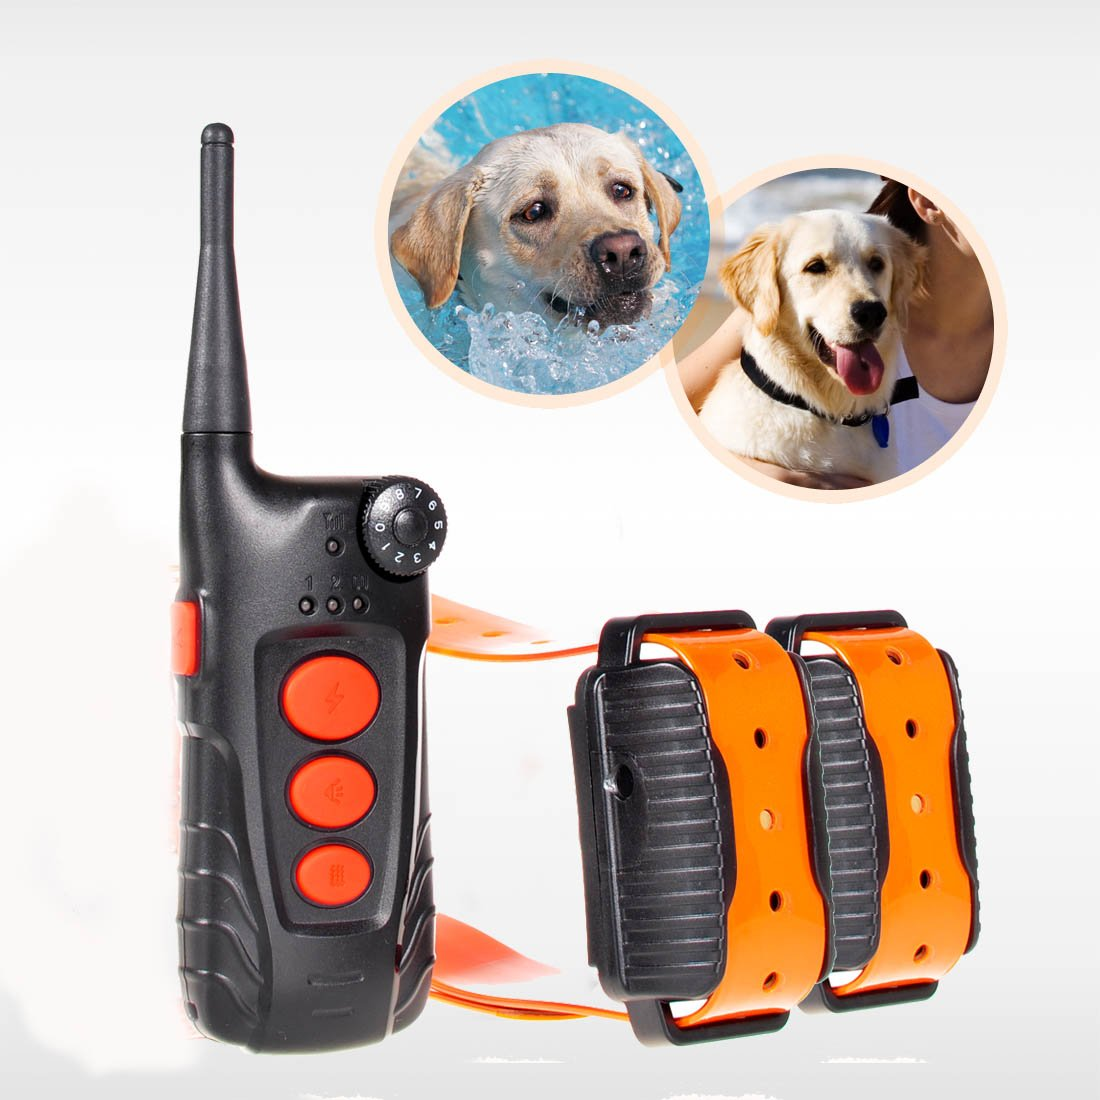 Aetertek® AT-918C-2 Updated & Submersible Dog Training Shock Collar Rechargeable Dog Collar with 600 Yards Remote Range (For 2 dogs) by Aetertek